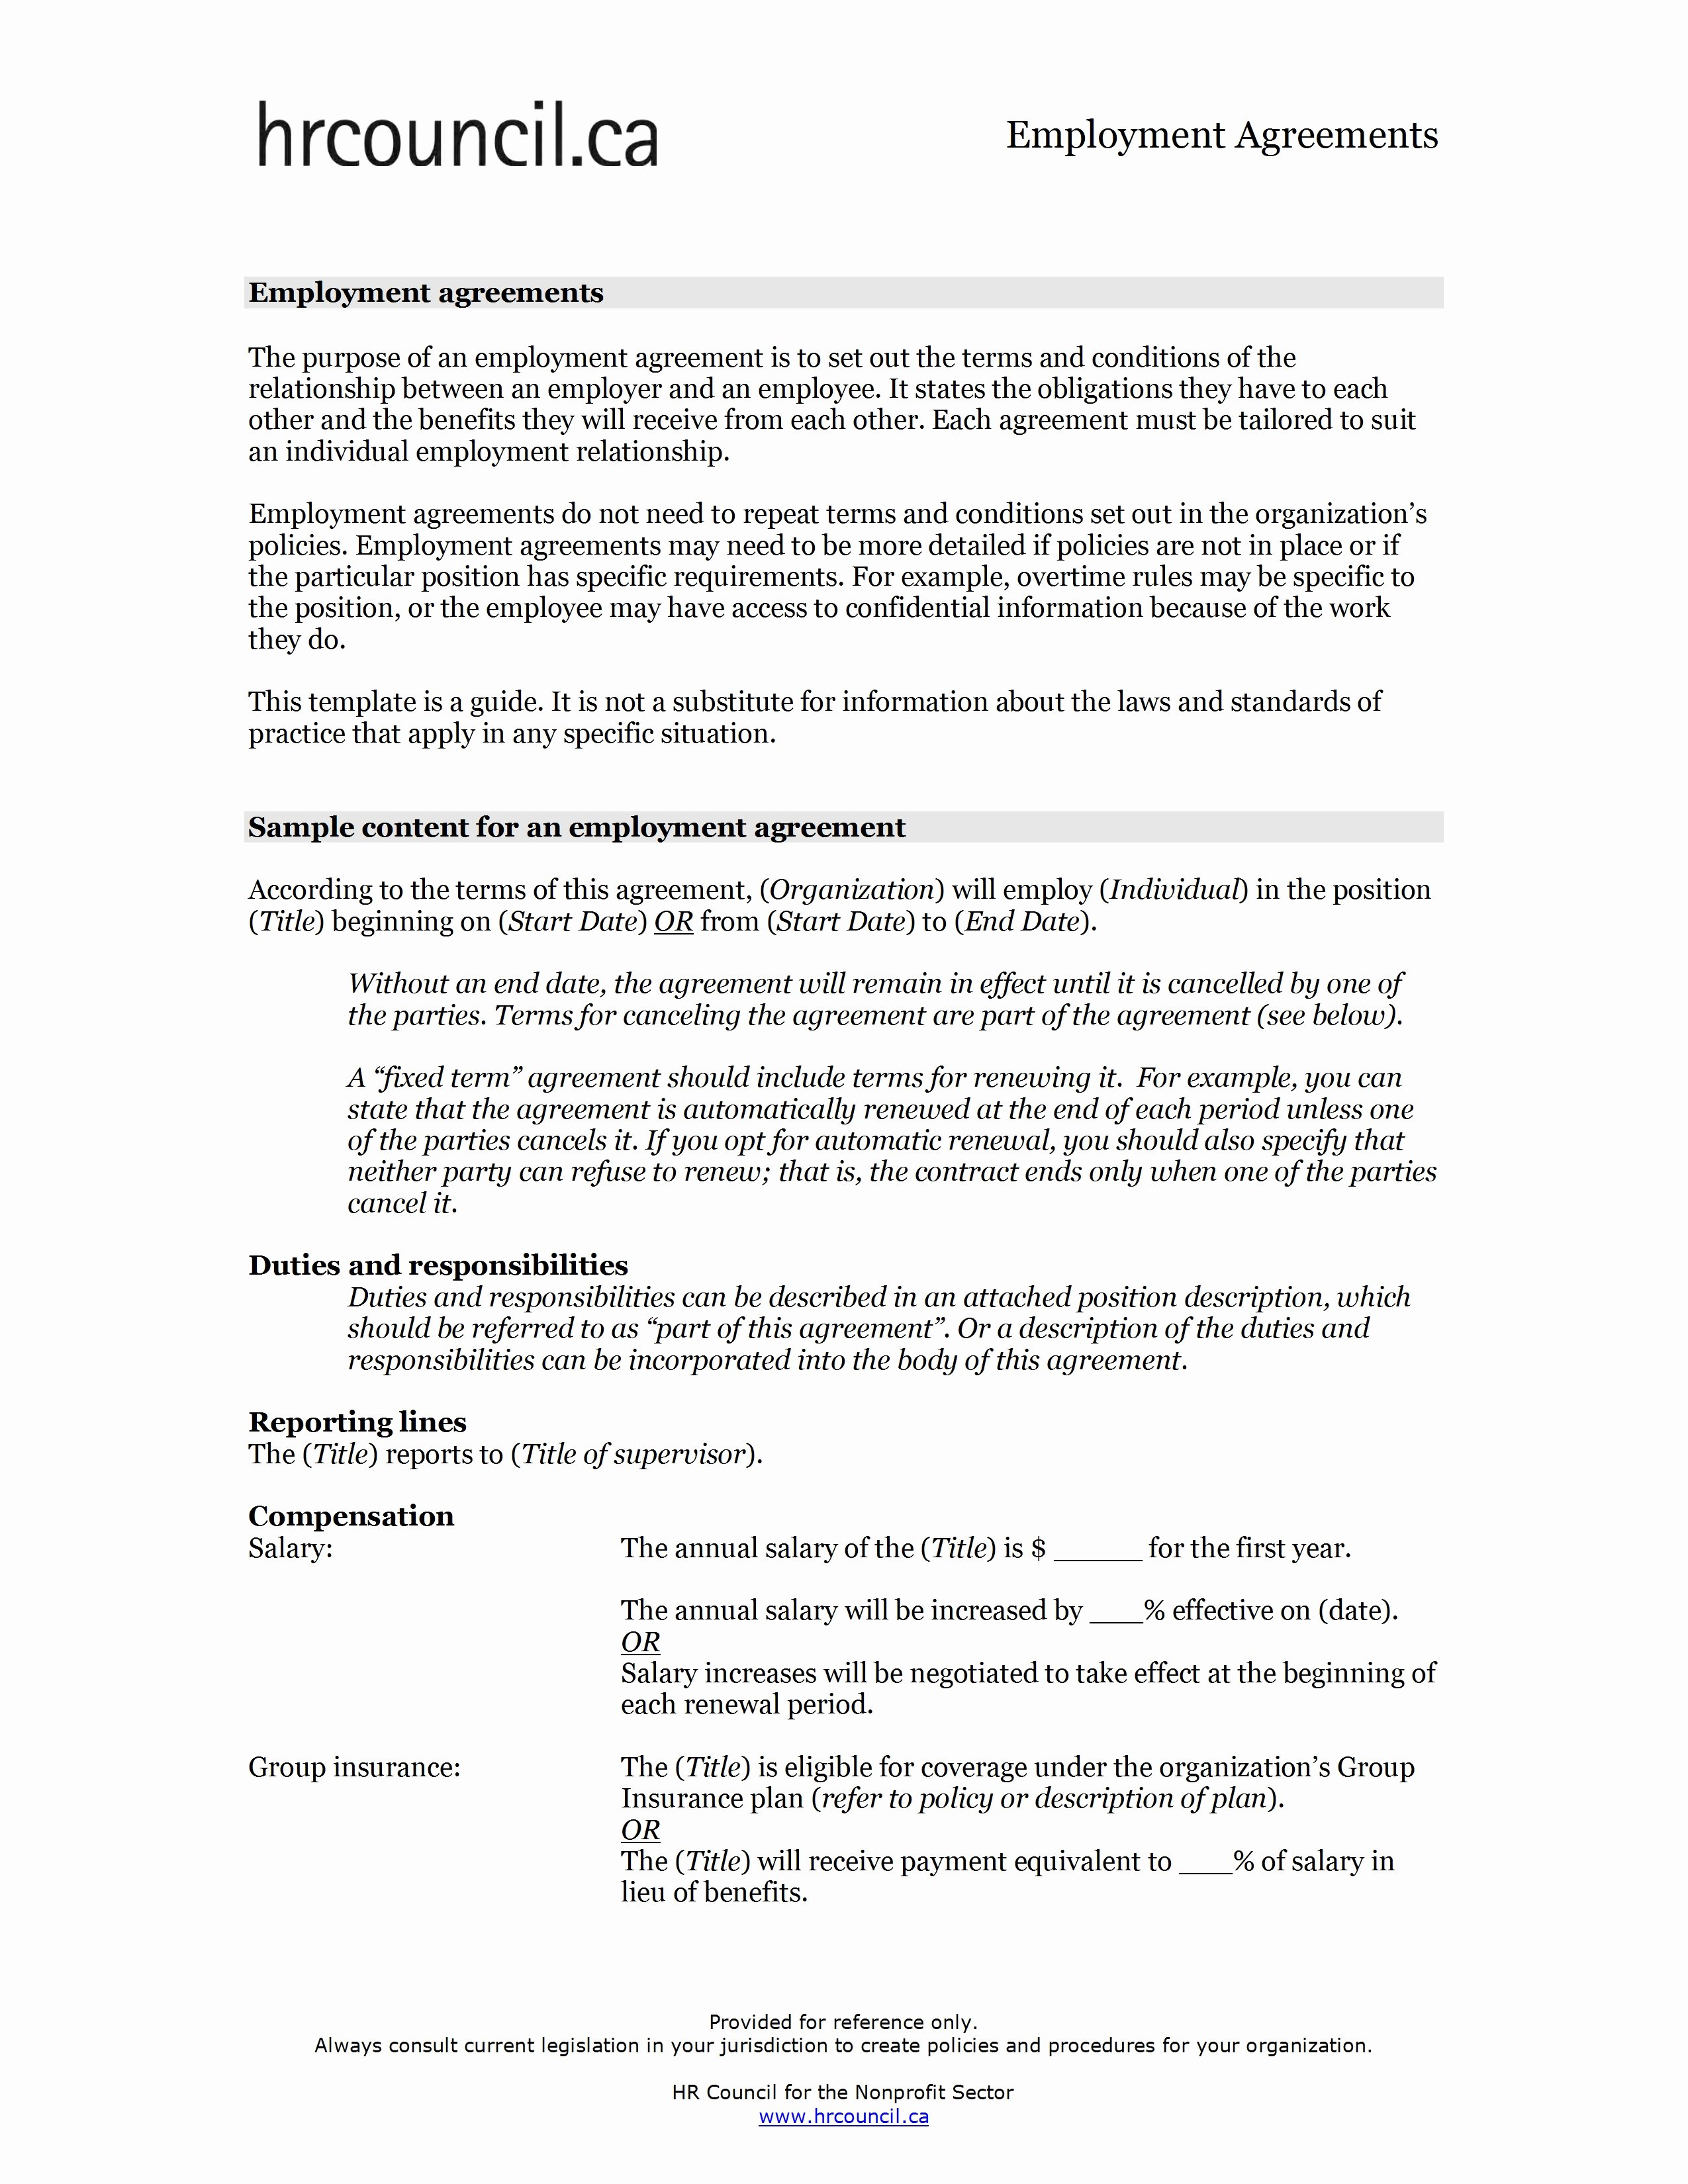 Free Employment Contract Template Word New Employment Contract Sample